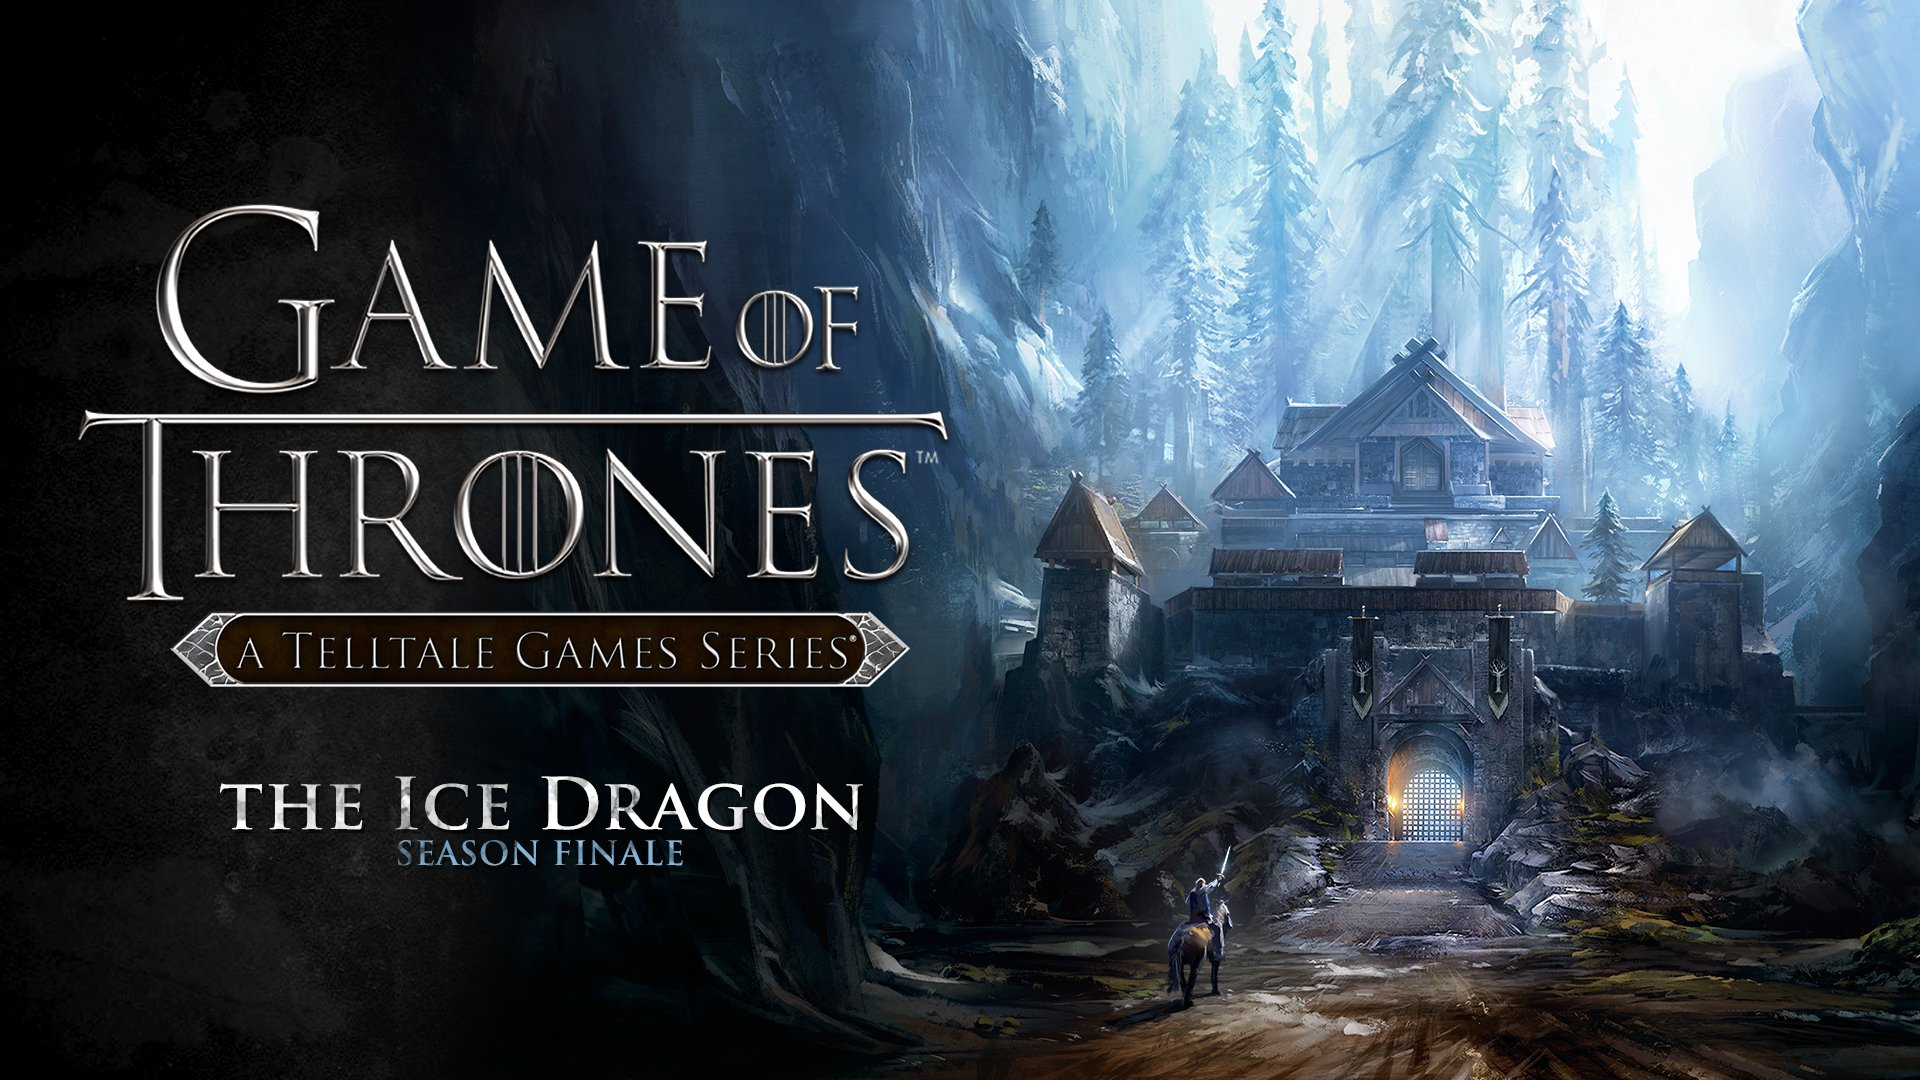 Telltale Games Confirms Game of Thrones Season 2 - Winter is Coming